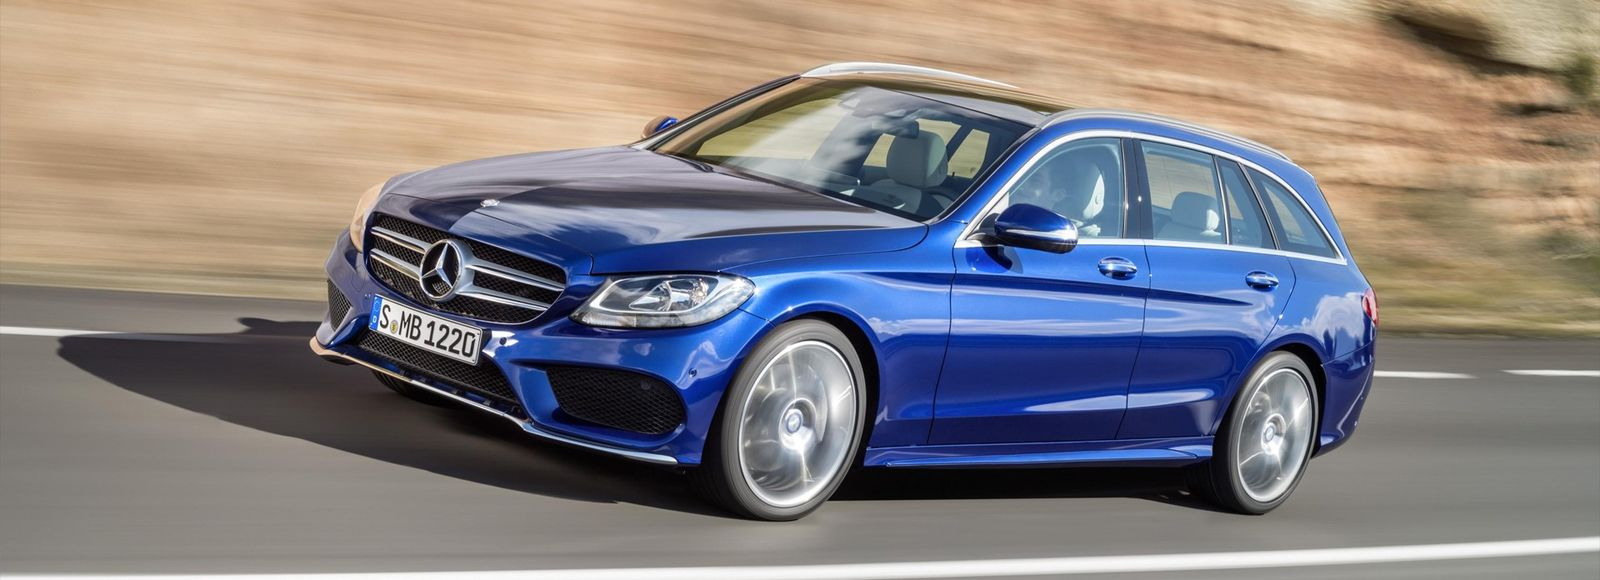 Mercedes c class options which to buy carwow for Mercedes benz intelligent light system c class